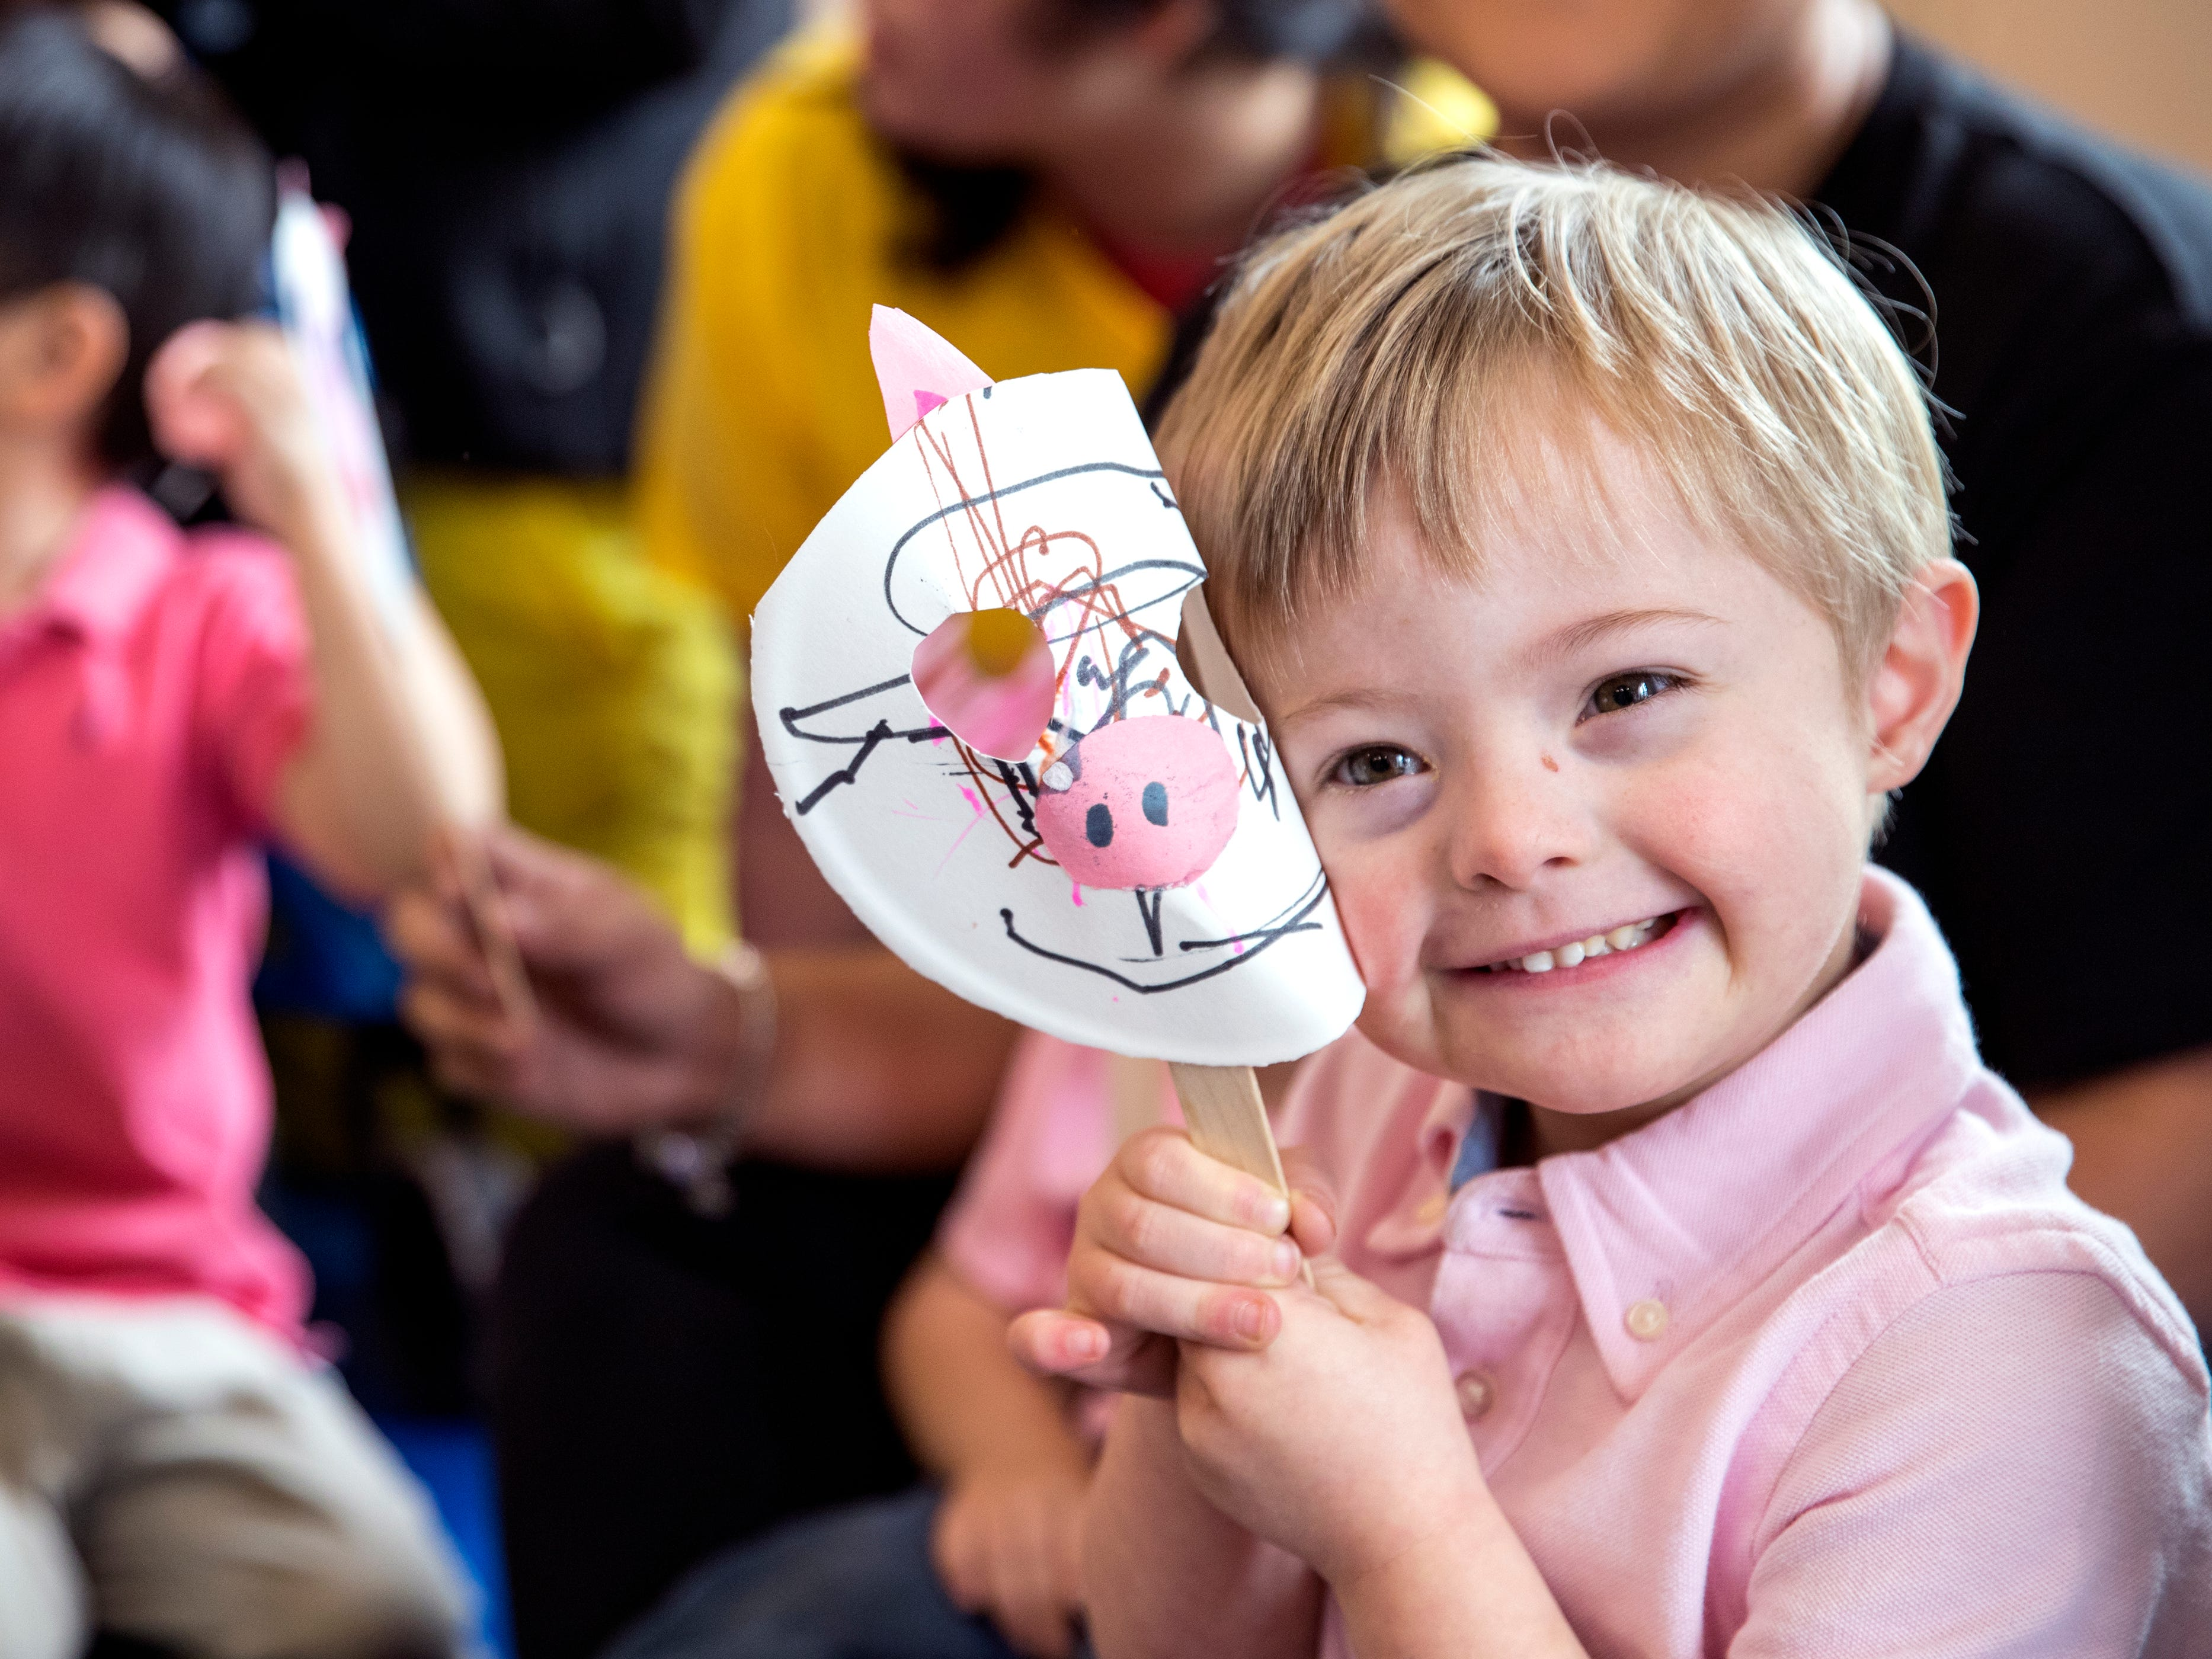 Tres George, 4, a student at the Rise School of Corpus Christi holds his pig mask as he waits for the executive director to kiss a pig on Friday, March 8, 2019. She promised she would kiss a pig if parents raised over $50,000 at the school's annual 5K, they raised close to $80,000.